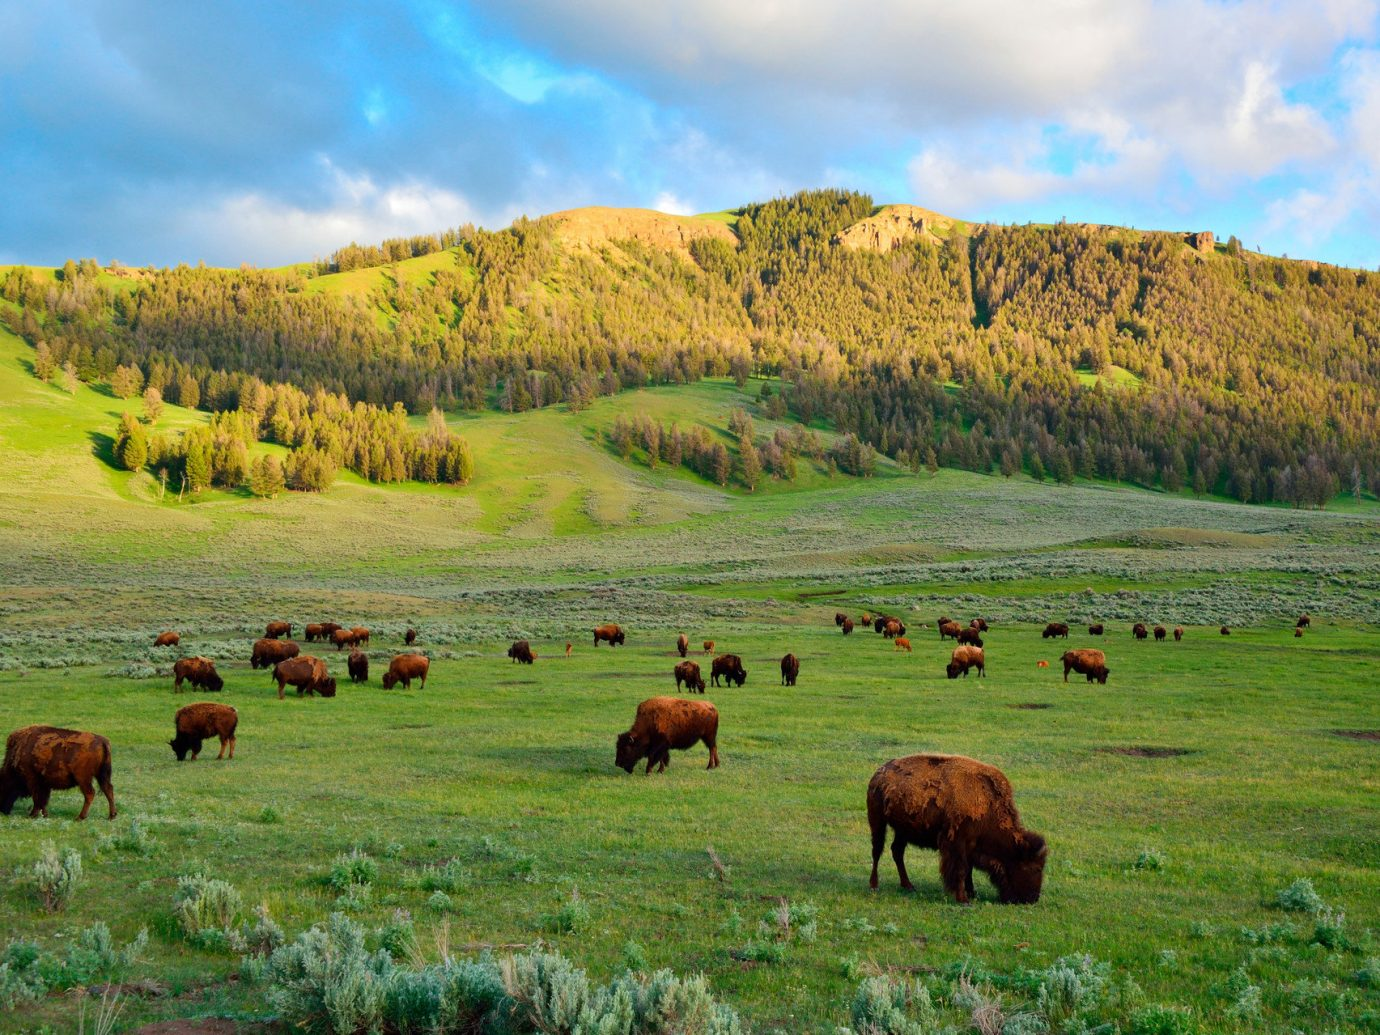 Family Travel National Parks Road Trips Travel Tips Trip Ideas grass sky cow outdoor field highland mountain habitat grazing pasture mountainous landforms grassland green geographical feature natural environment wilderness cattle herd meadow ecosystem plain prairie cattle like mammal mammal hill grassy steppe rural area Wildlife landscape plateau bovine bison tundra lush hillside distance